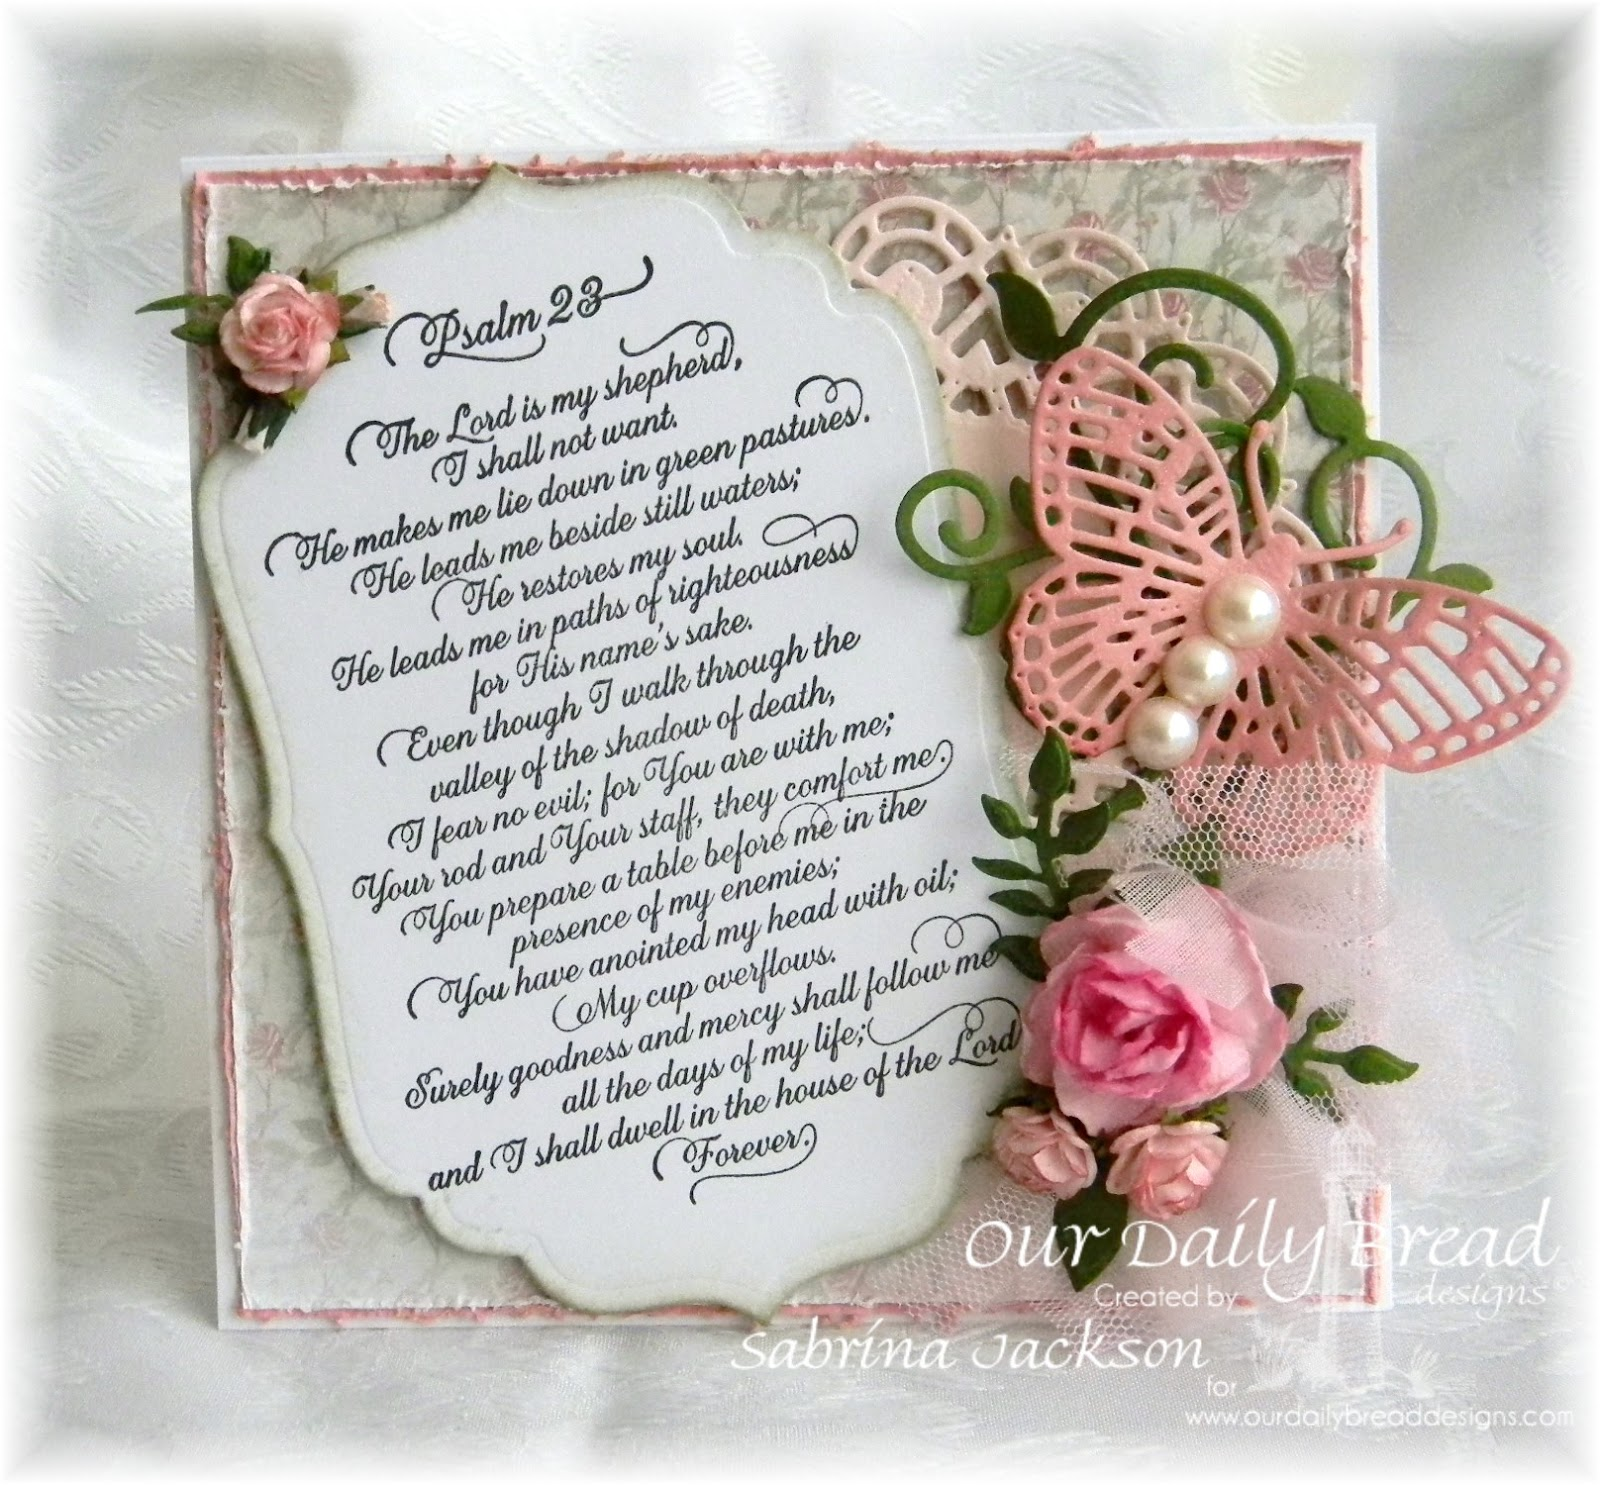 Stanps - Our Daily Bread Designs Psalm 23 Script, ODBD Shabby Rose Paper Collection, ODBD Custom Dies: Doily, Fancy Fritillary, Fancy Foliage